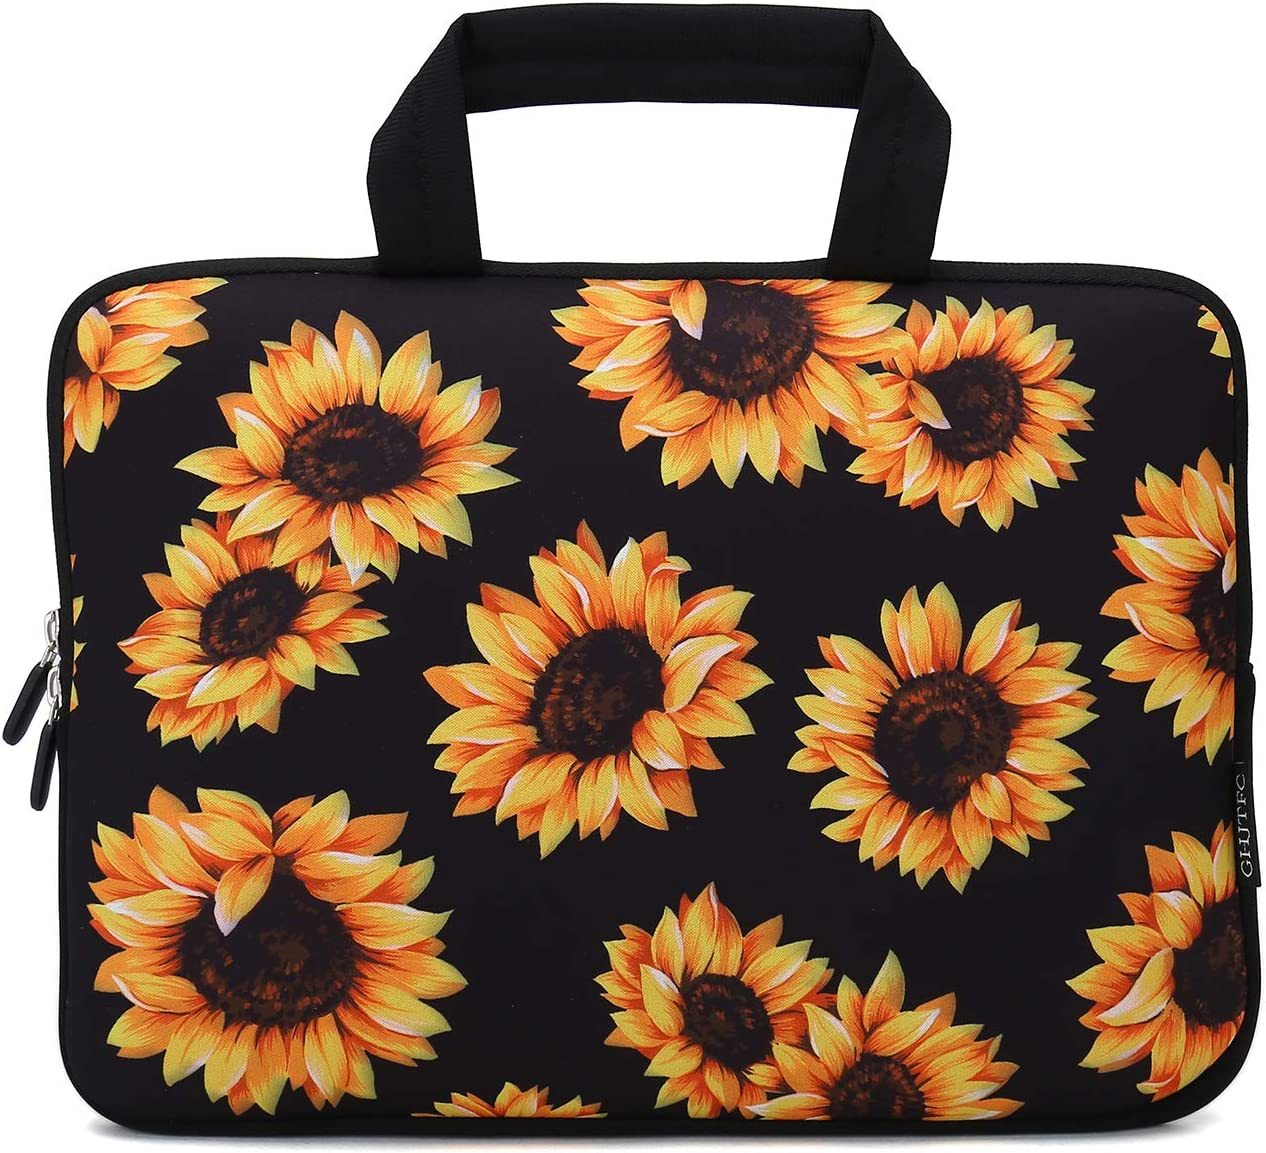 "12 Inch Laptop Sleeve Carrying Bag Protective Case Neoprene Sleeve Tote Tablet Cover Notebook Briefcase Bag with Handle for Women Men(Sunflower,12"")"